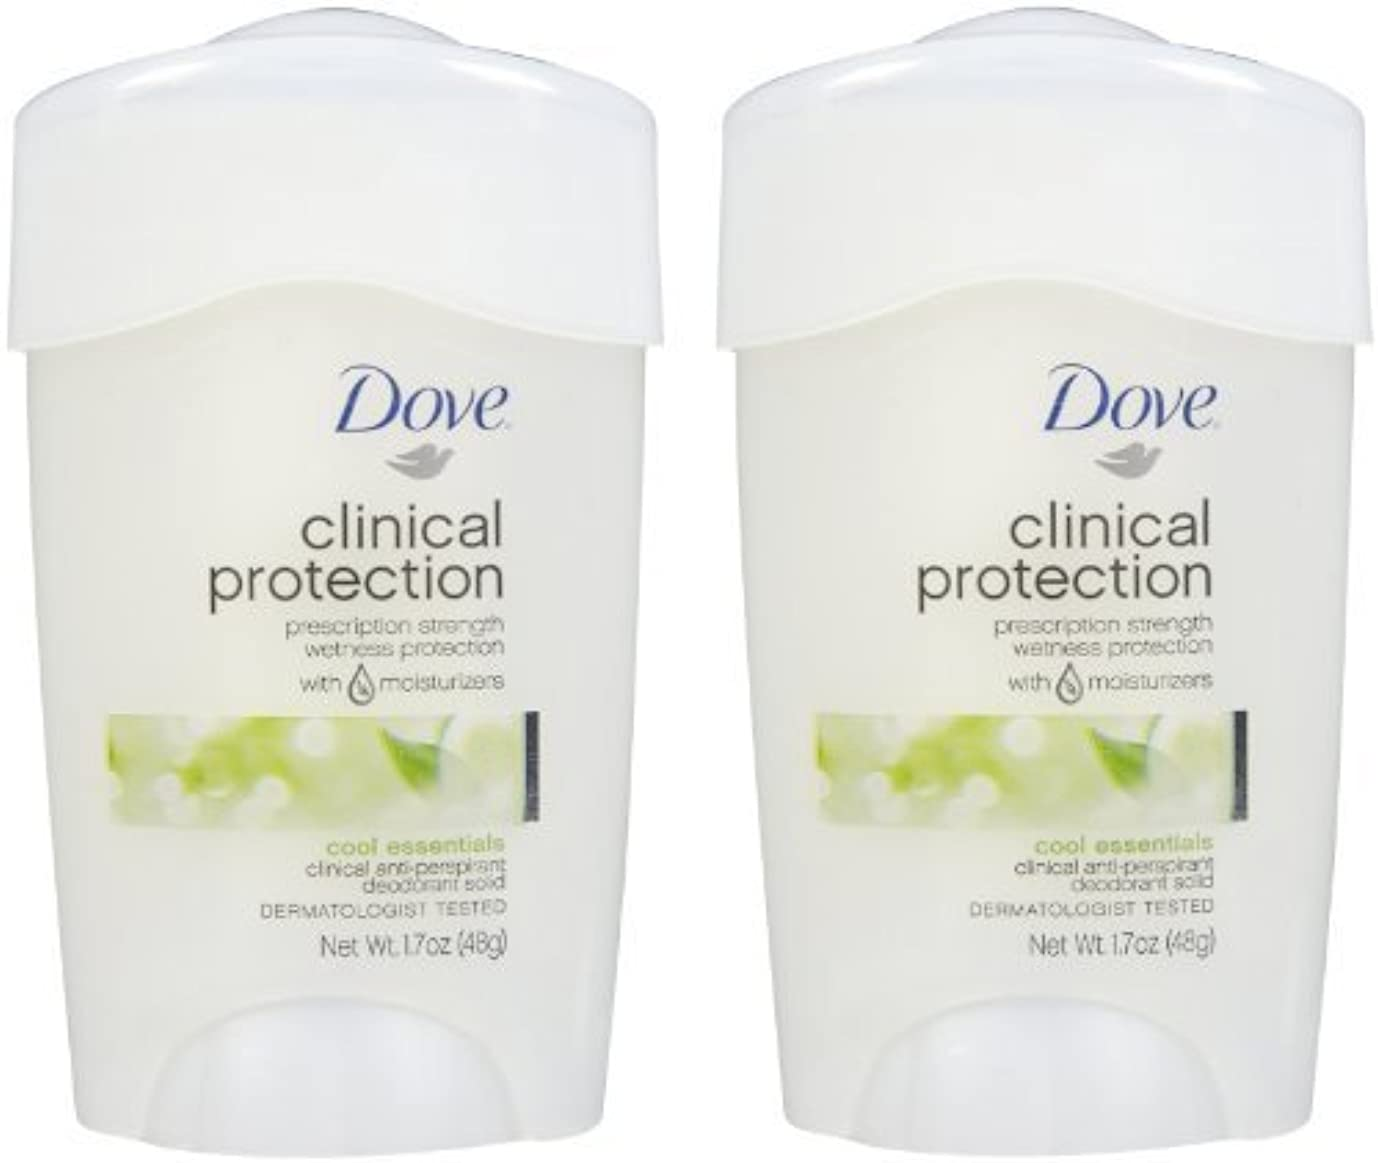 メトリック獲物導入するDove Clinical Protection Antiperspirant & Deodorant, Cool Essentials - 1.7 oz - 2 pk by Unilever [並行輸入品]